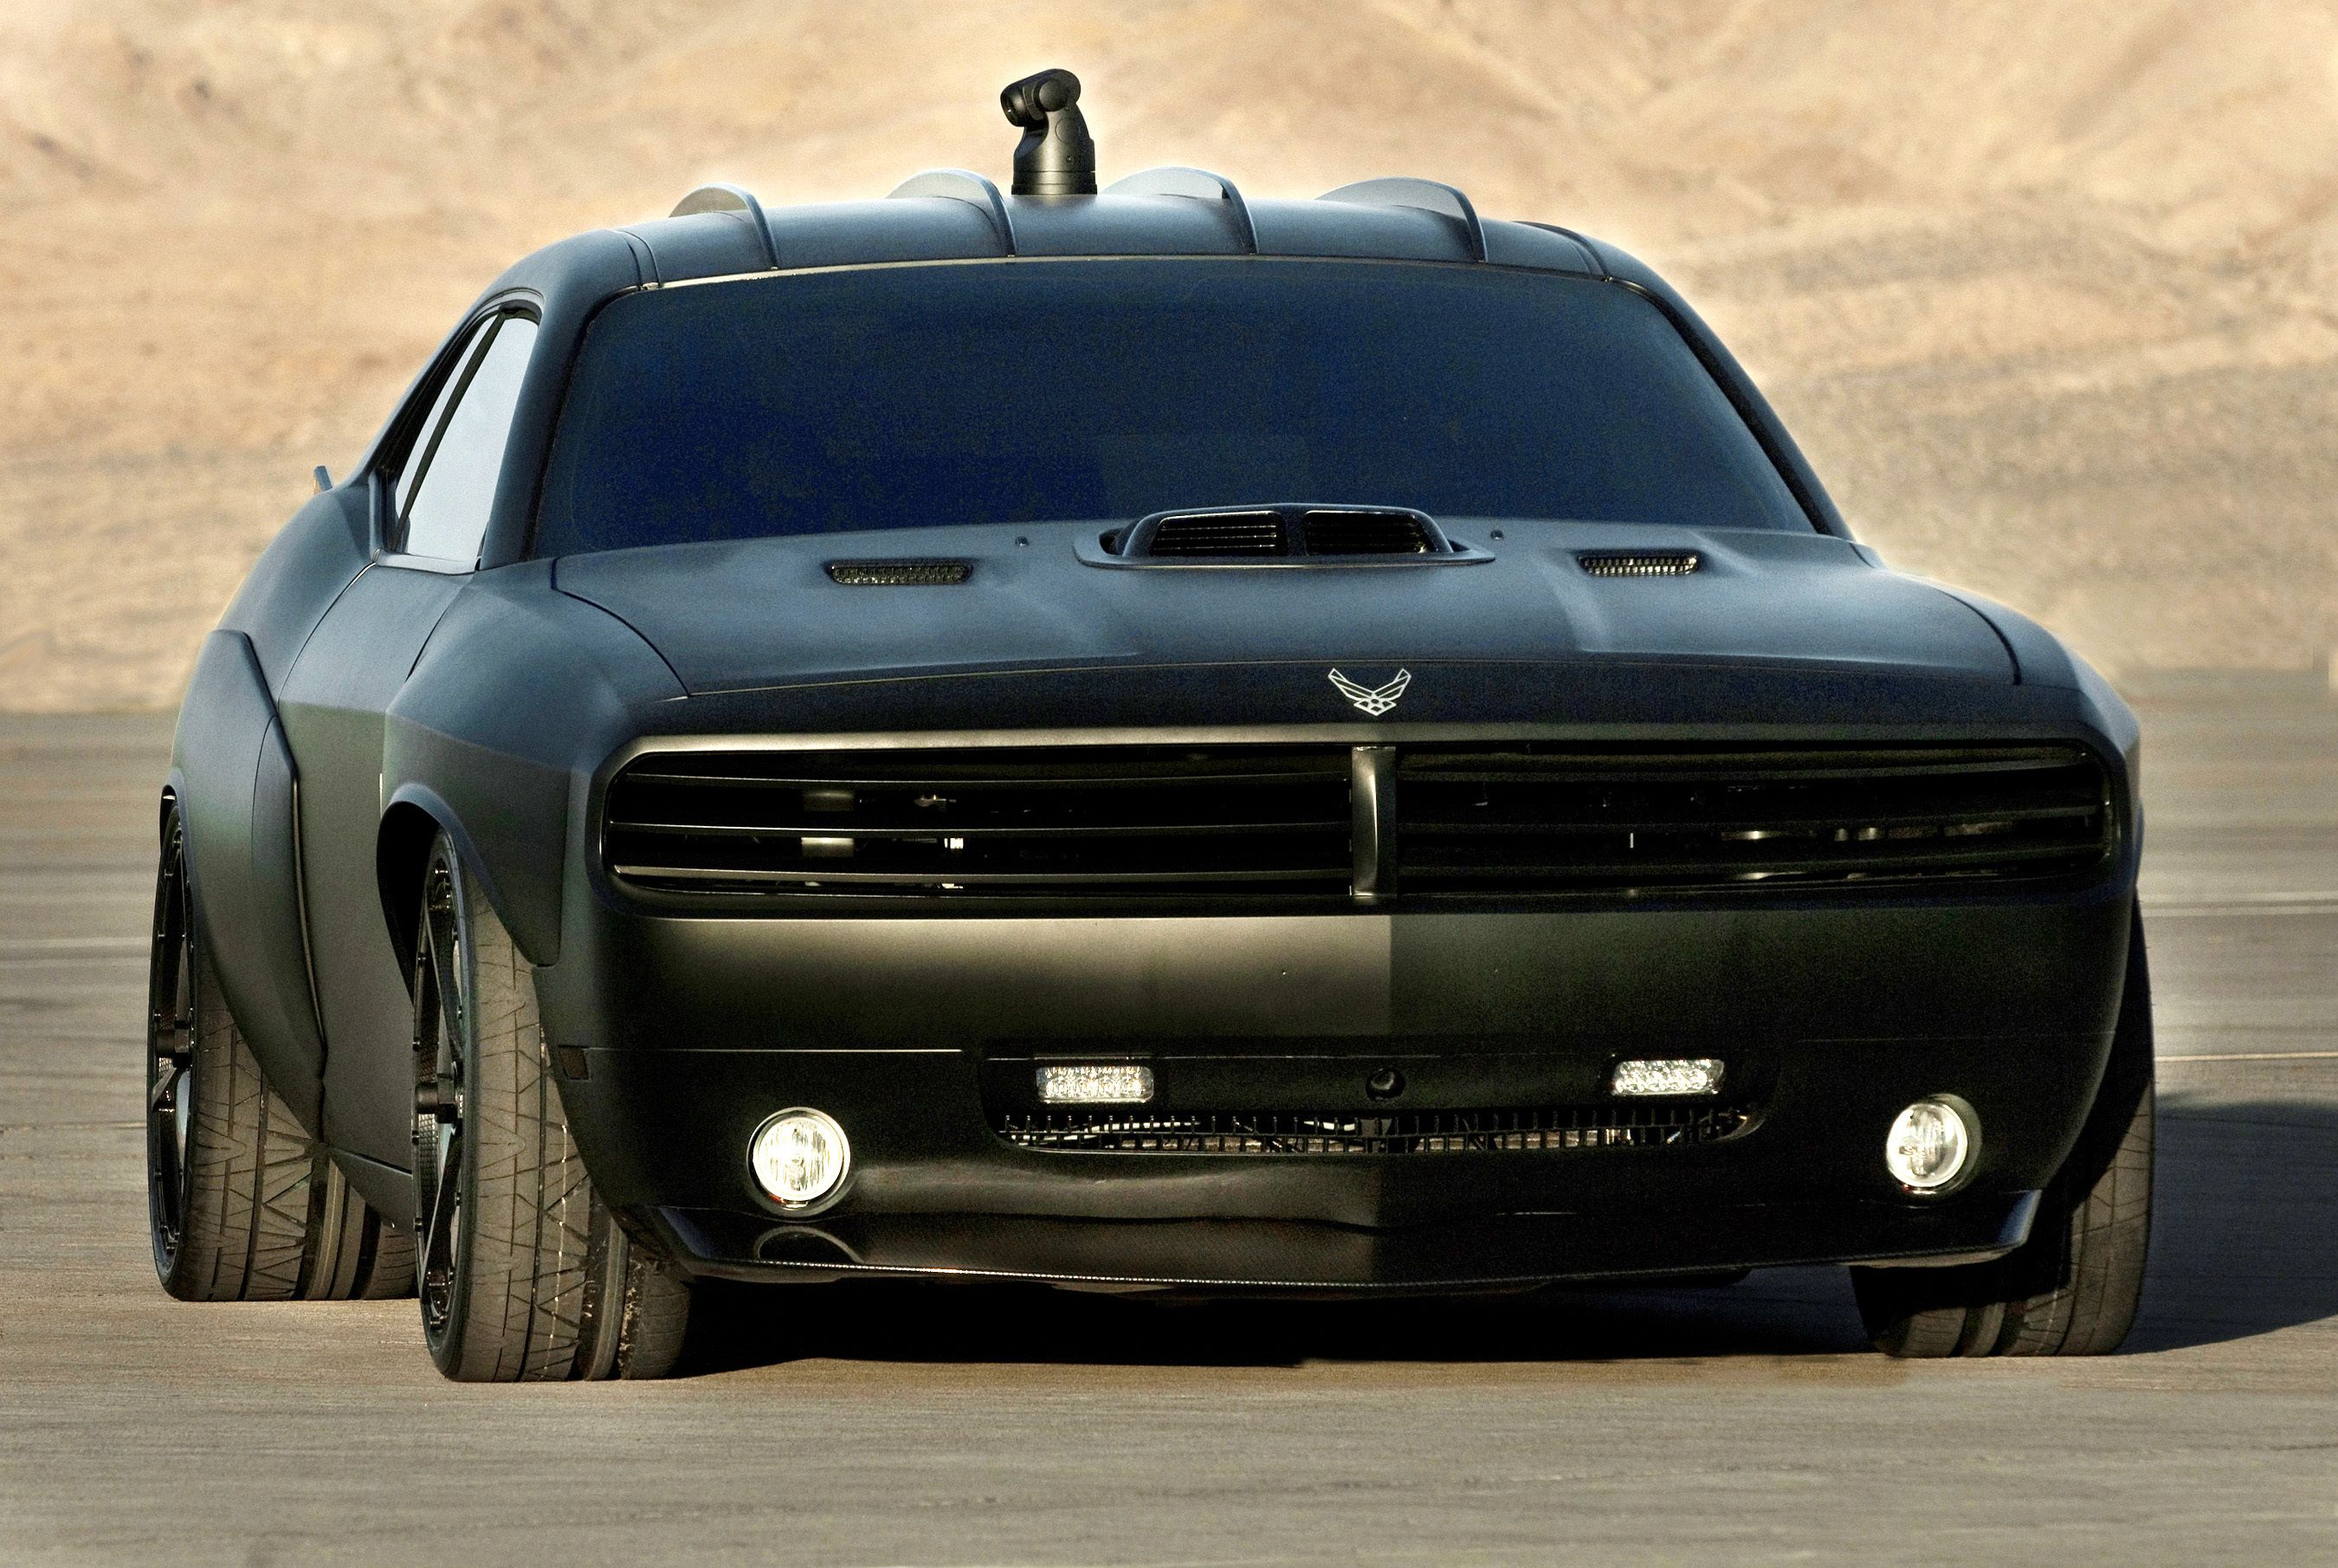 Dodge Charger Muscle Car Tuning Check more at http://hdwallpaperfx ...